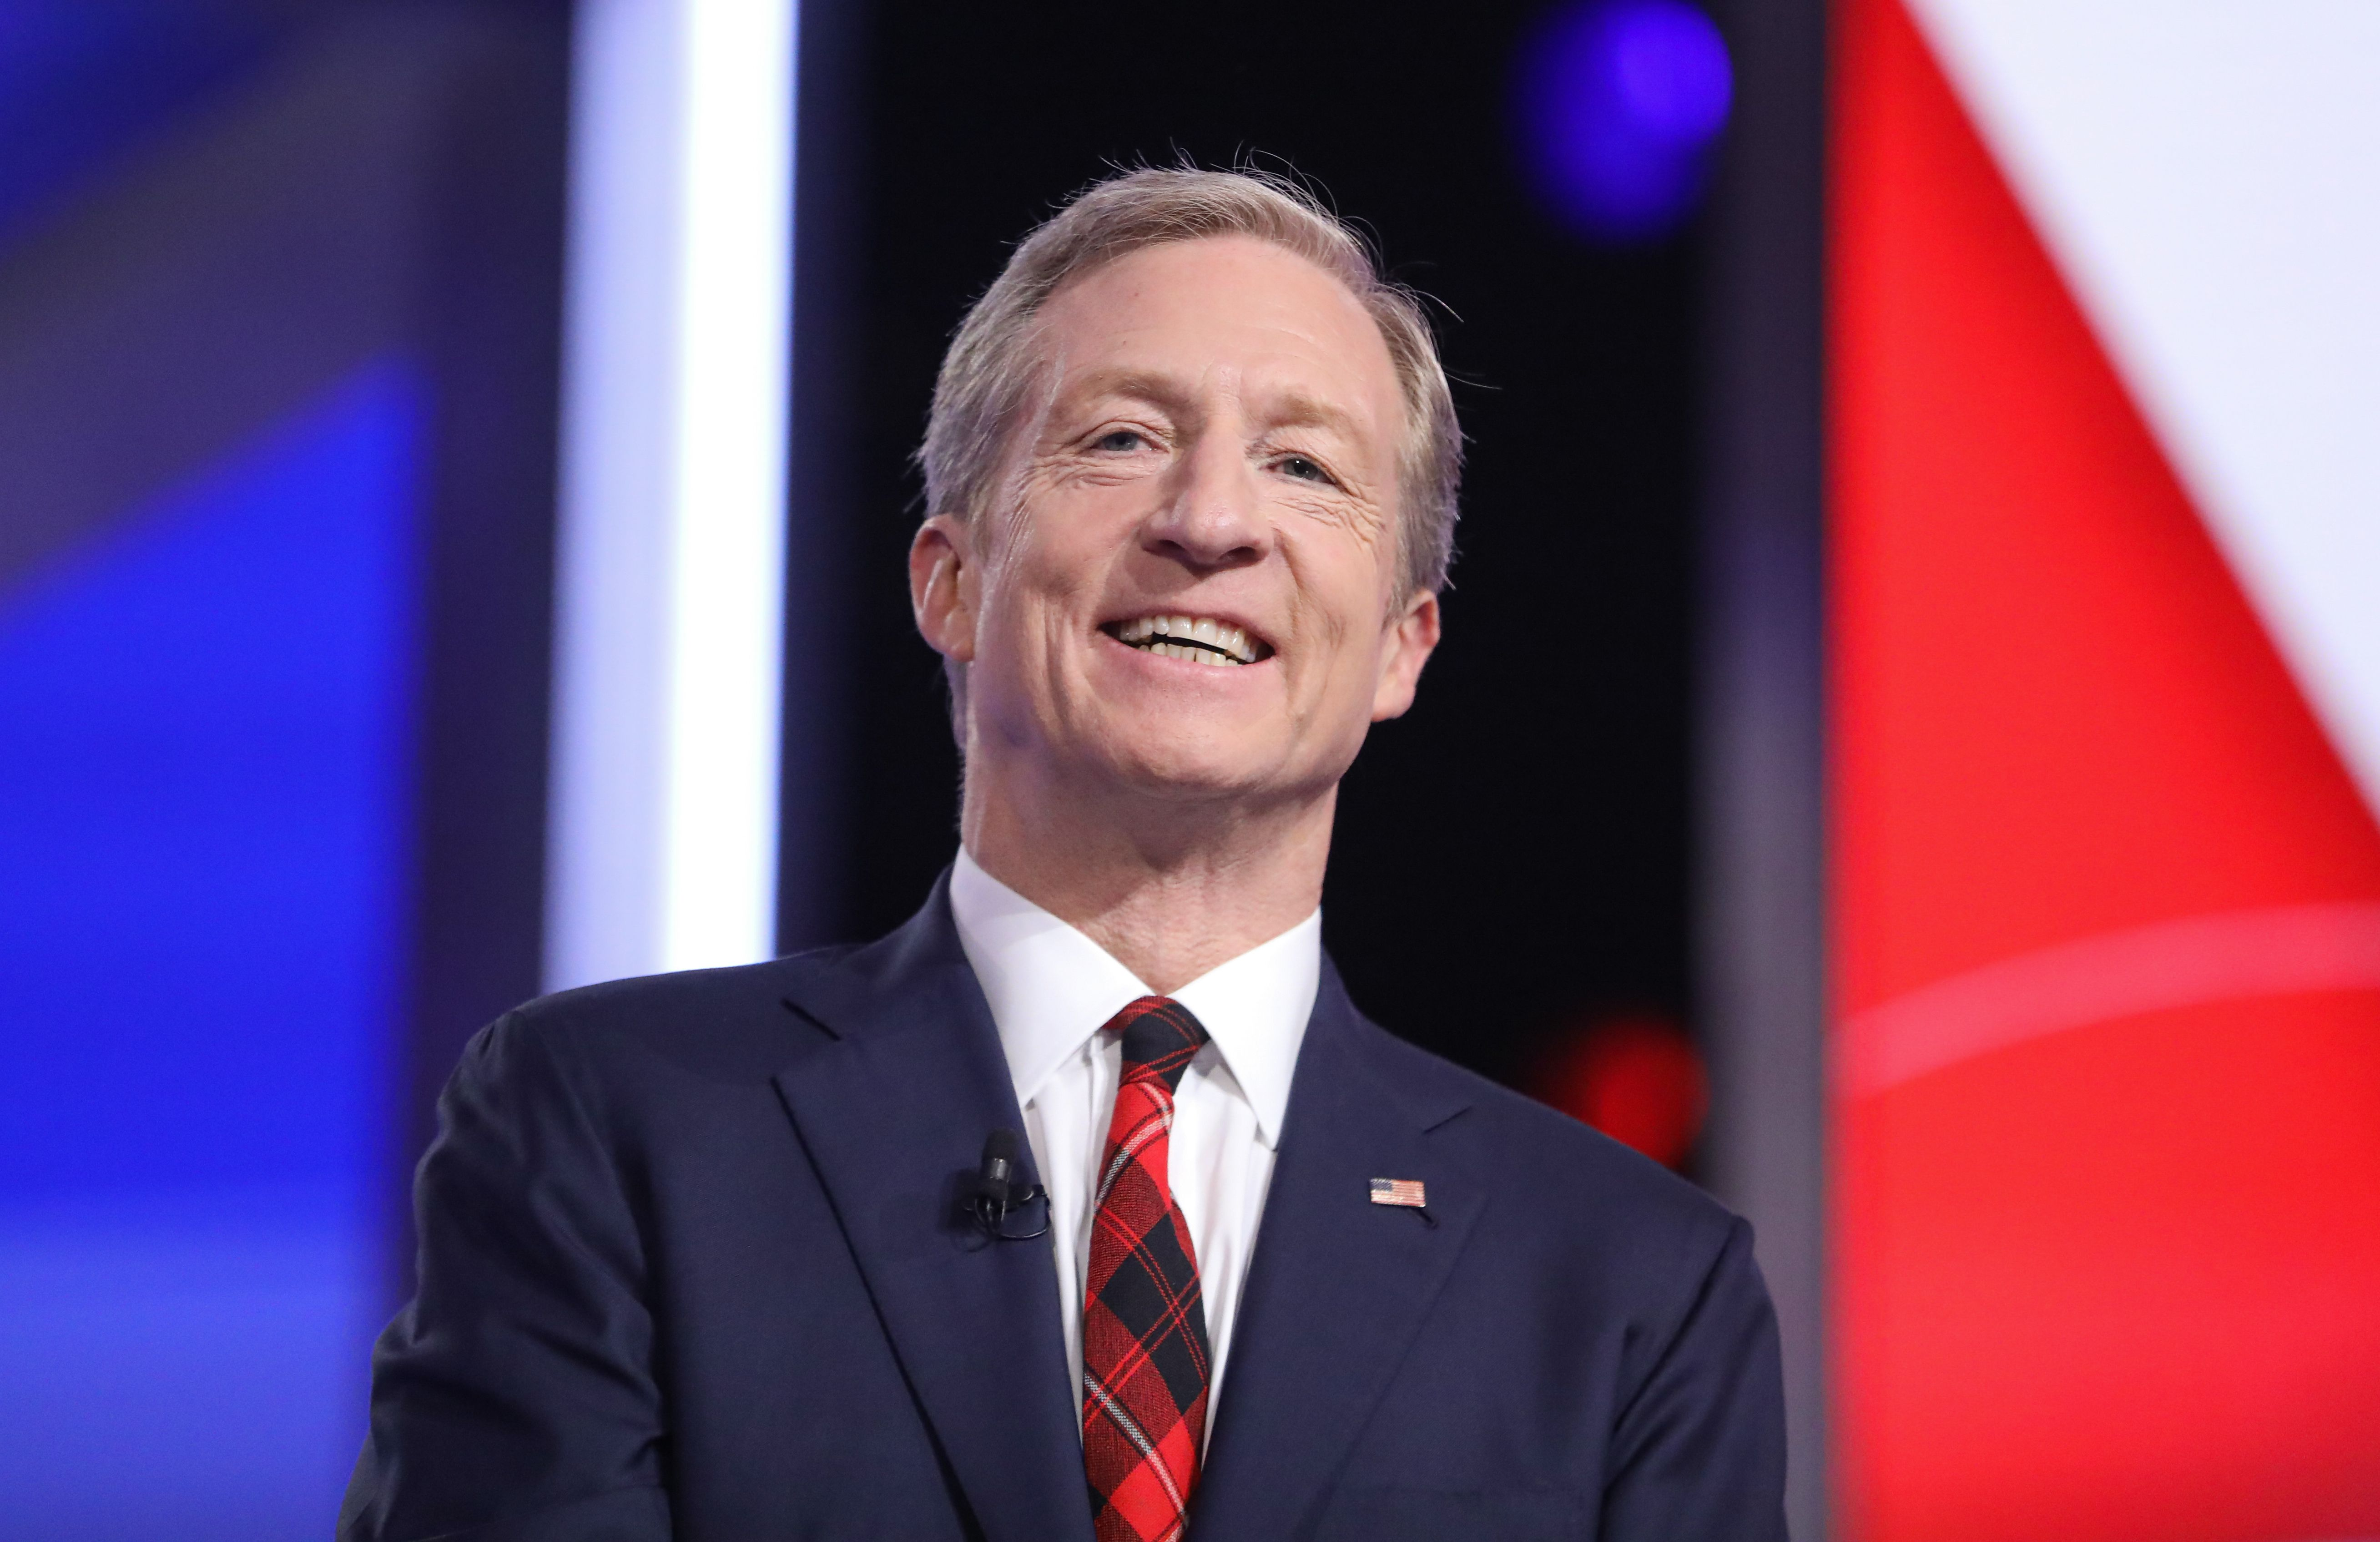 Democratic candidate Tom Steyer at the tenth democratic debate in South Carolina.